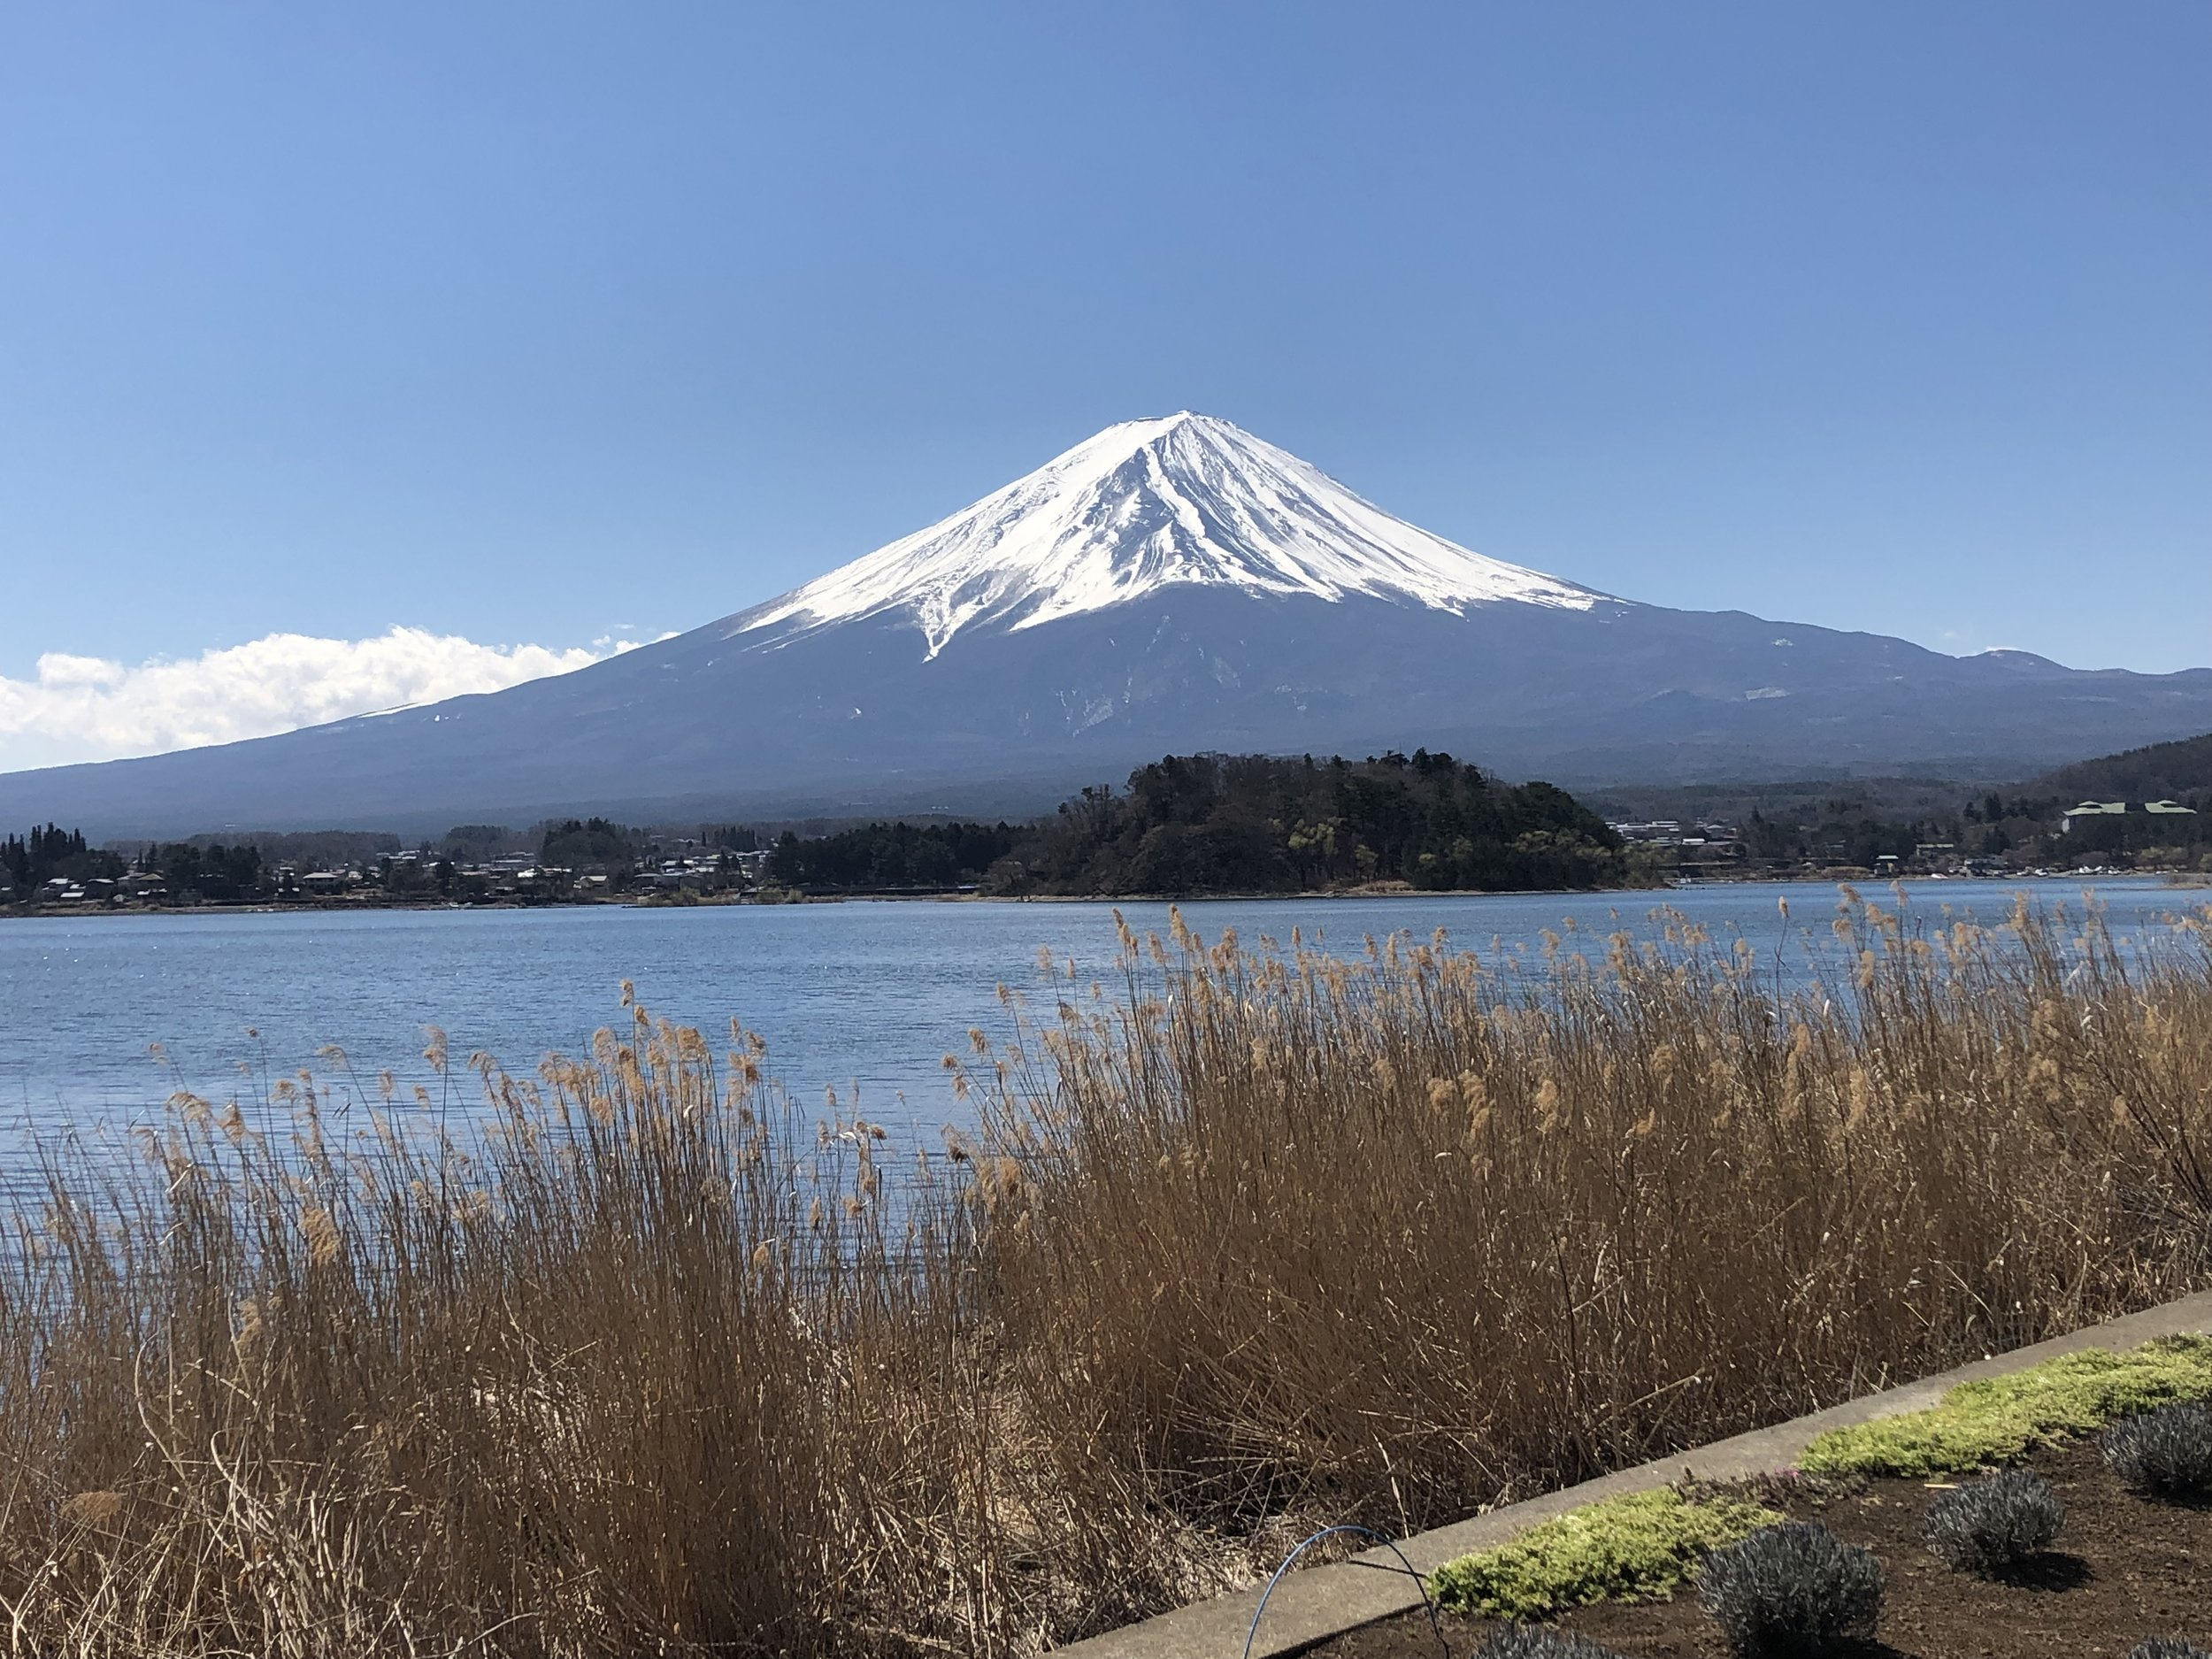 Mt. Fuji keeps appearing as if posing for portraits.